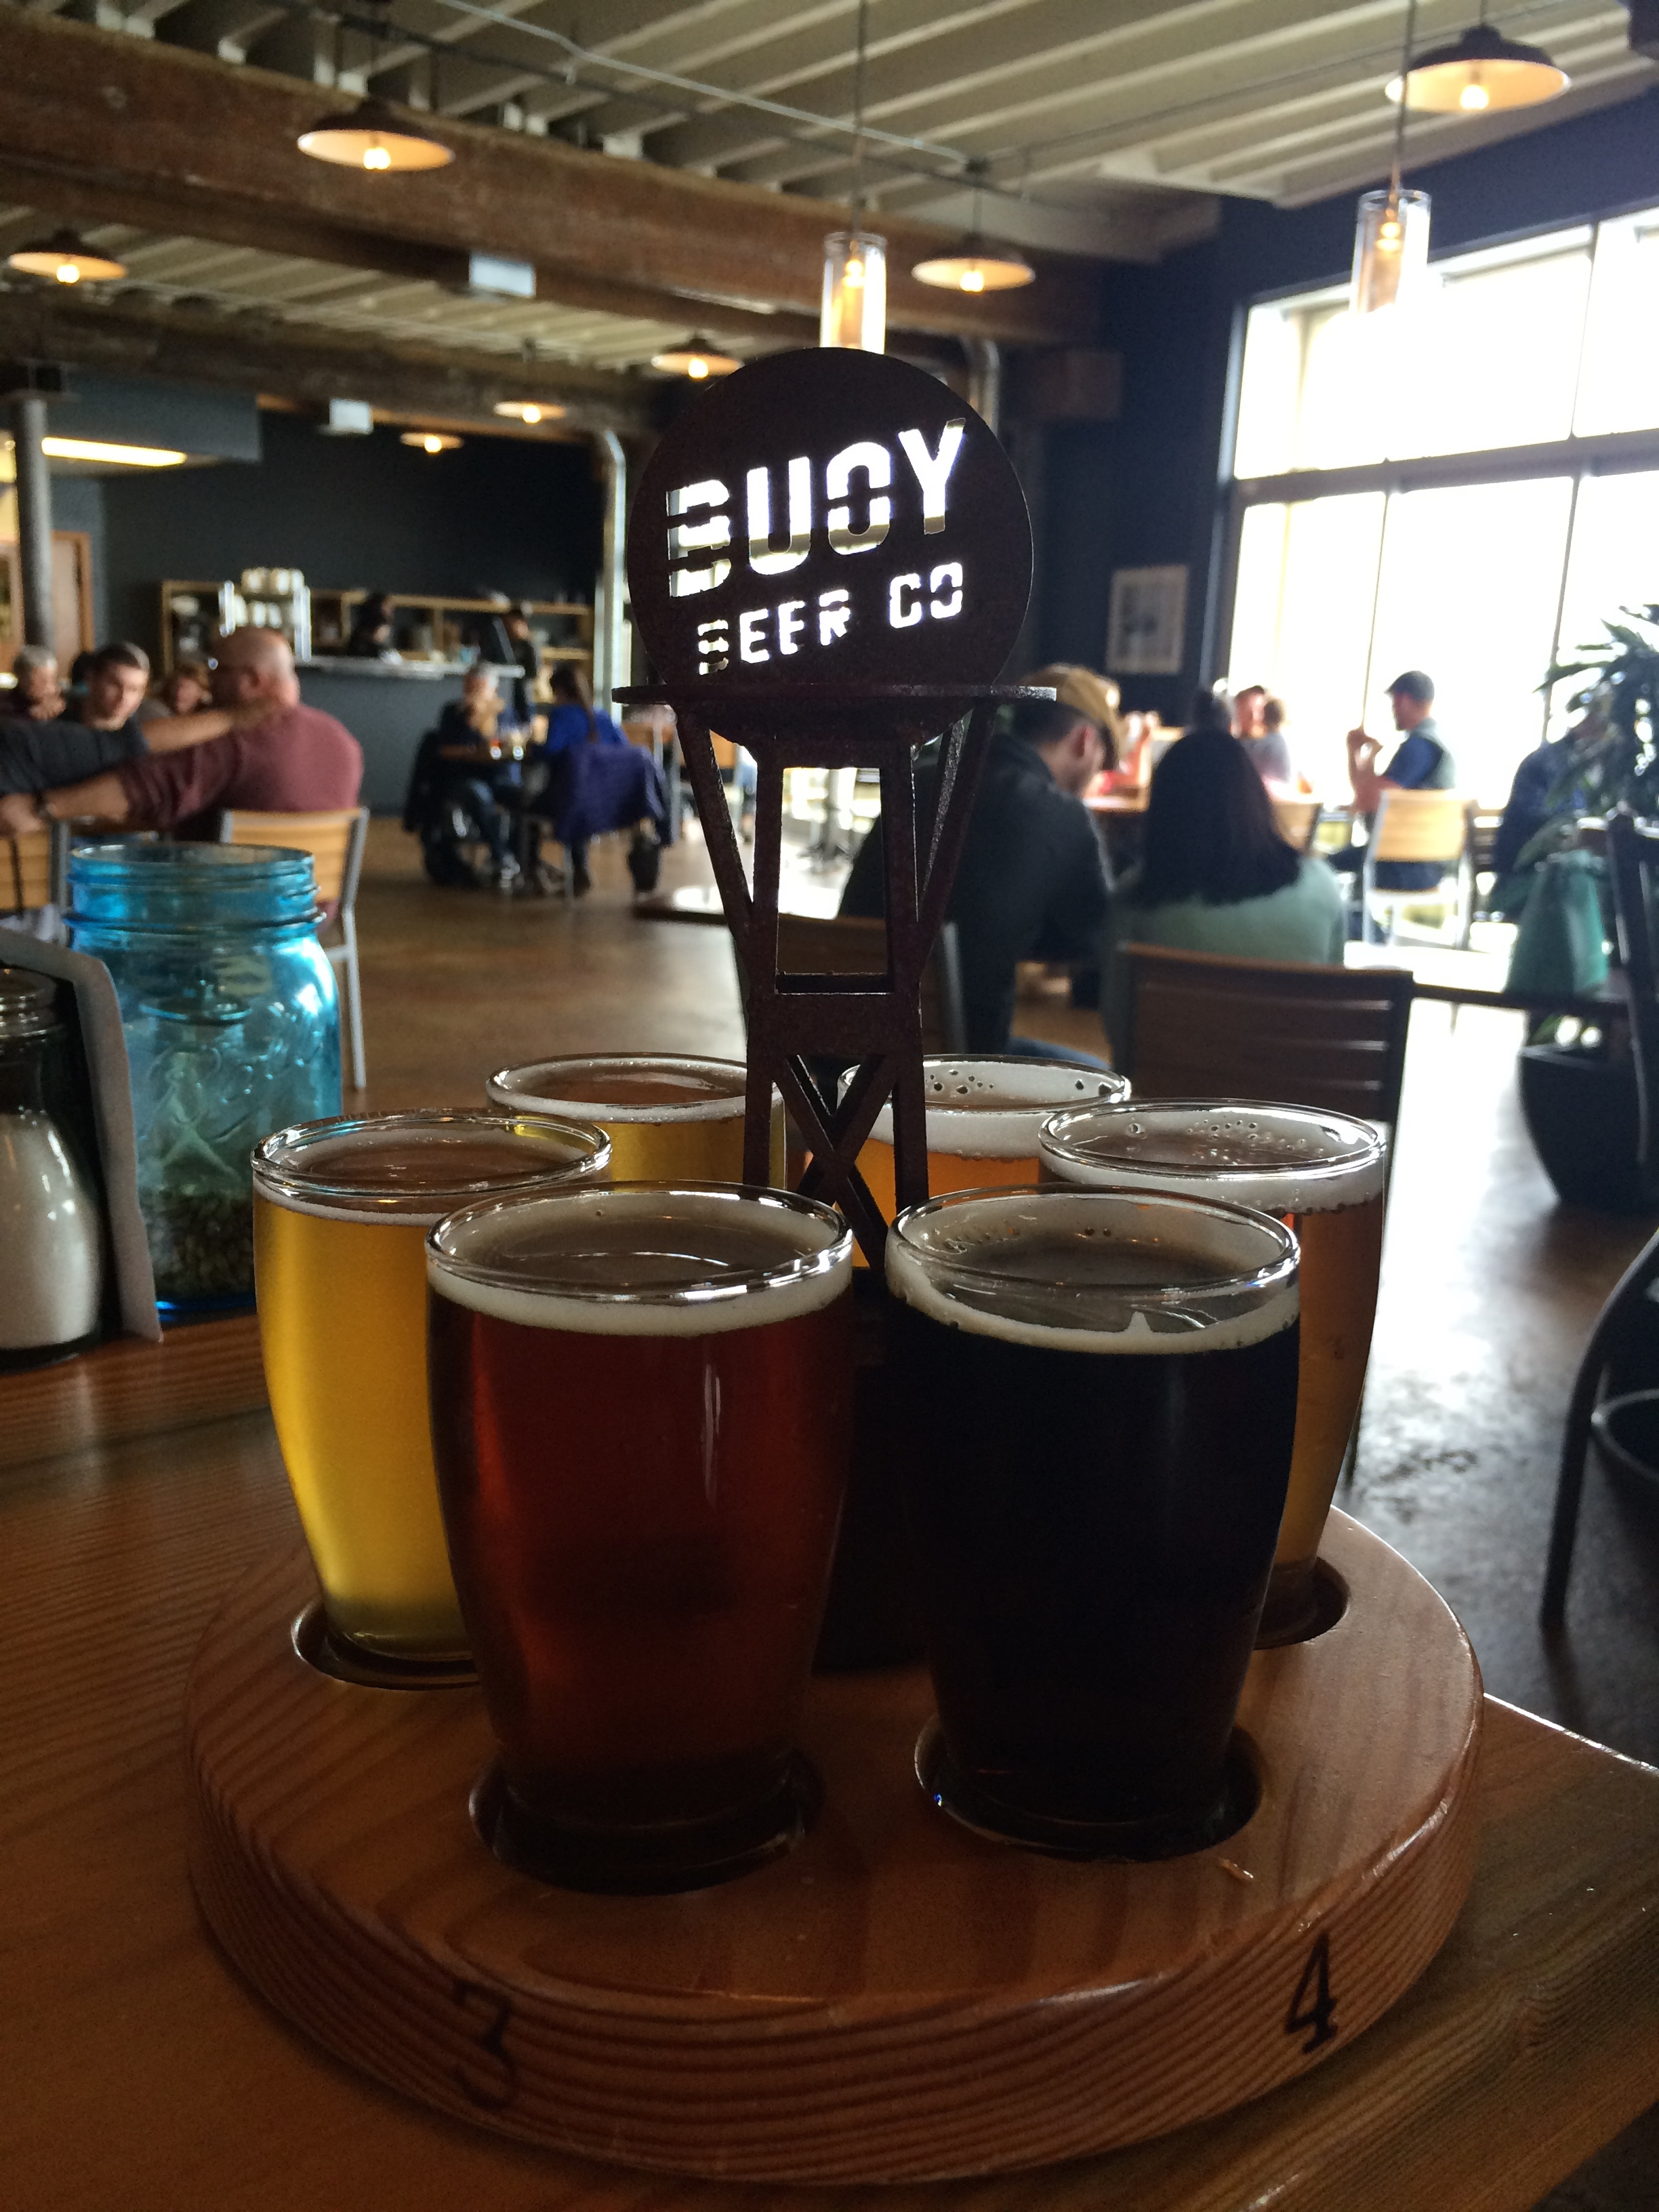 Taster Tray of Buoy Beer Co overlooking the Columbia River